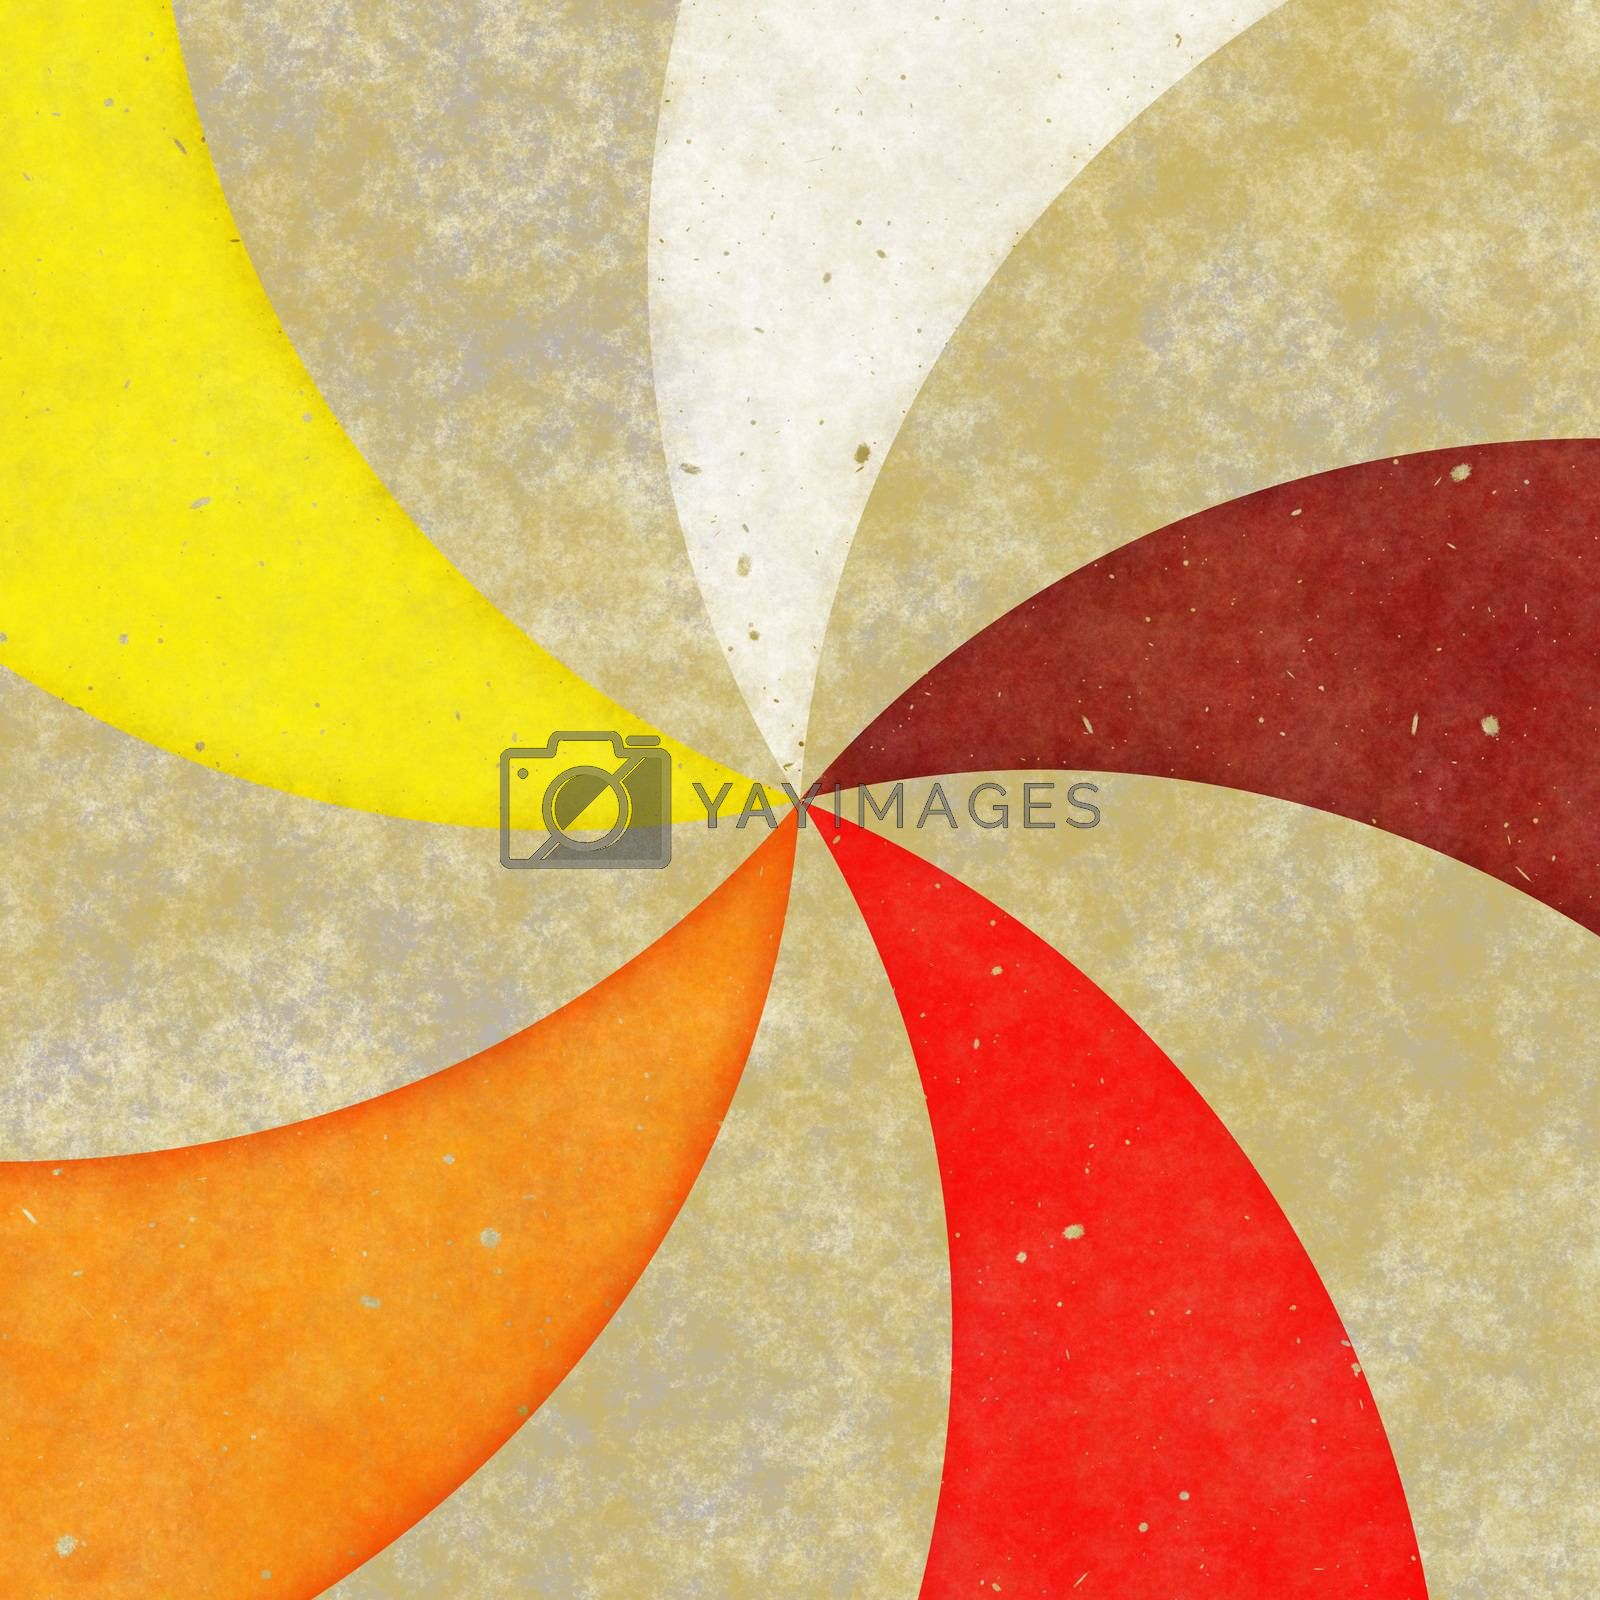 A retro or vintage looking rays pattern that works great as a background or backdrop.